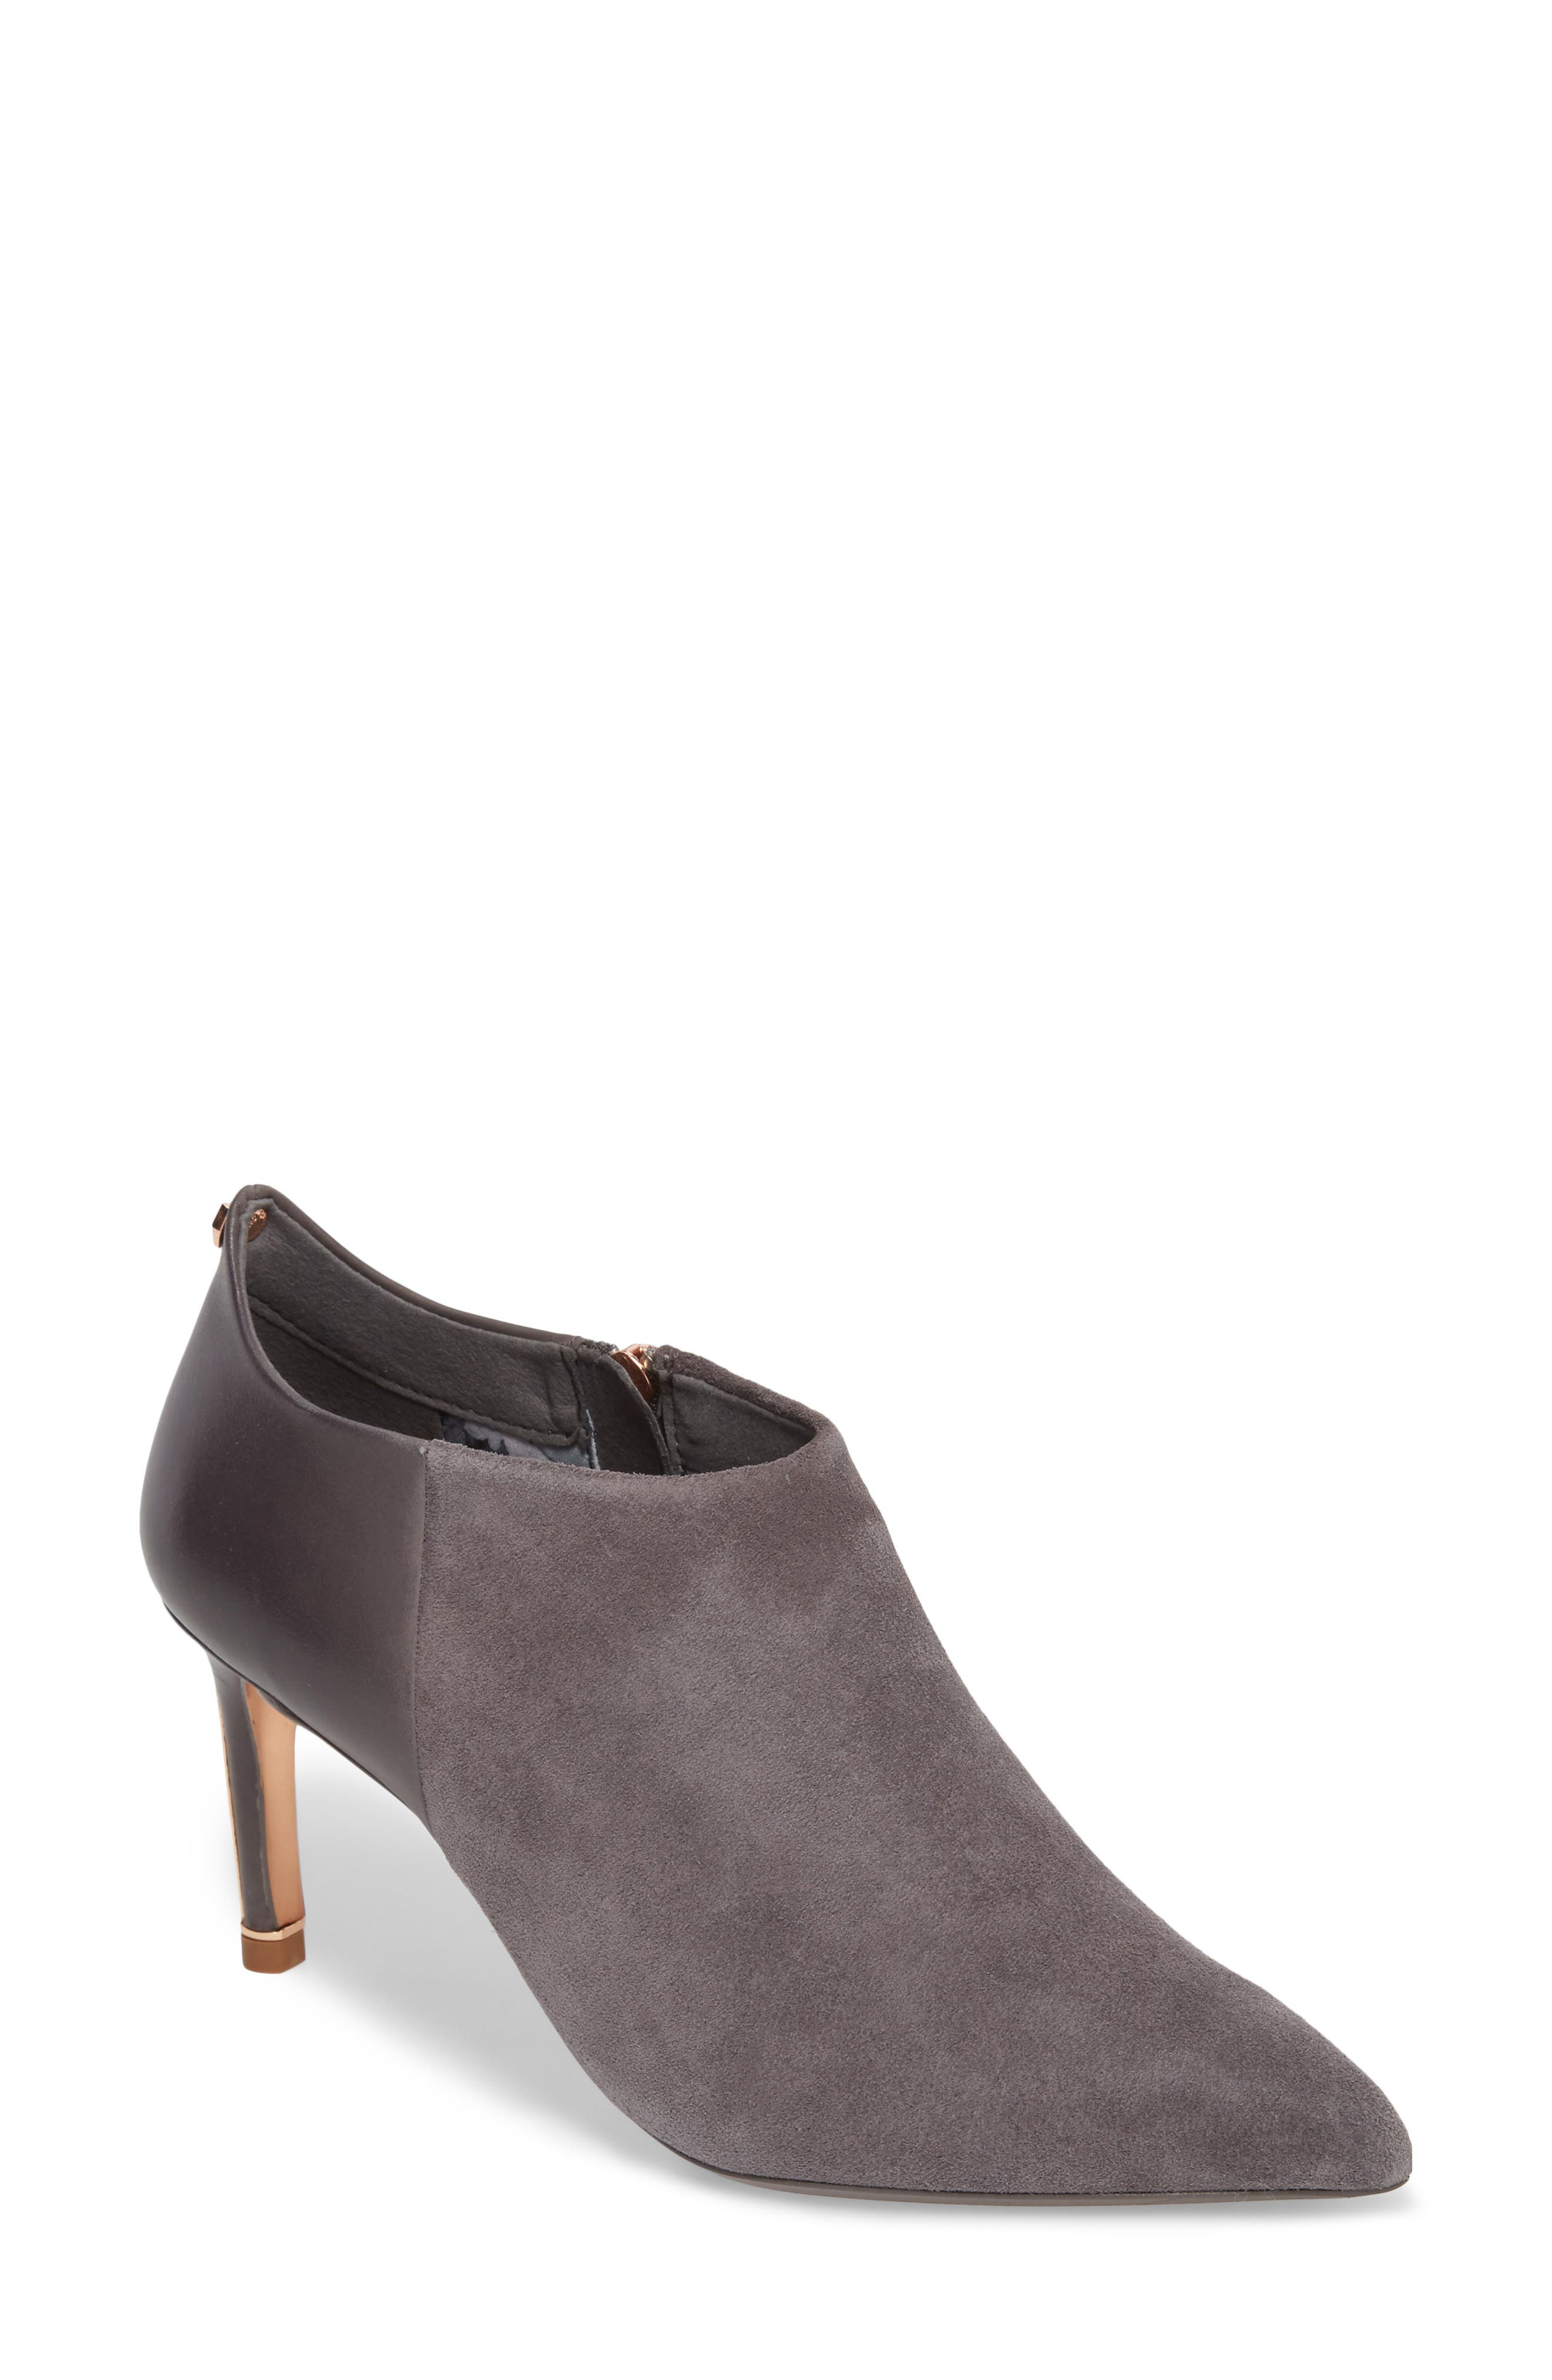 Akasher Bootie,                         Main,                         color, Grey Suede